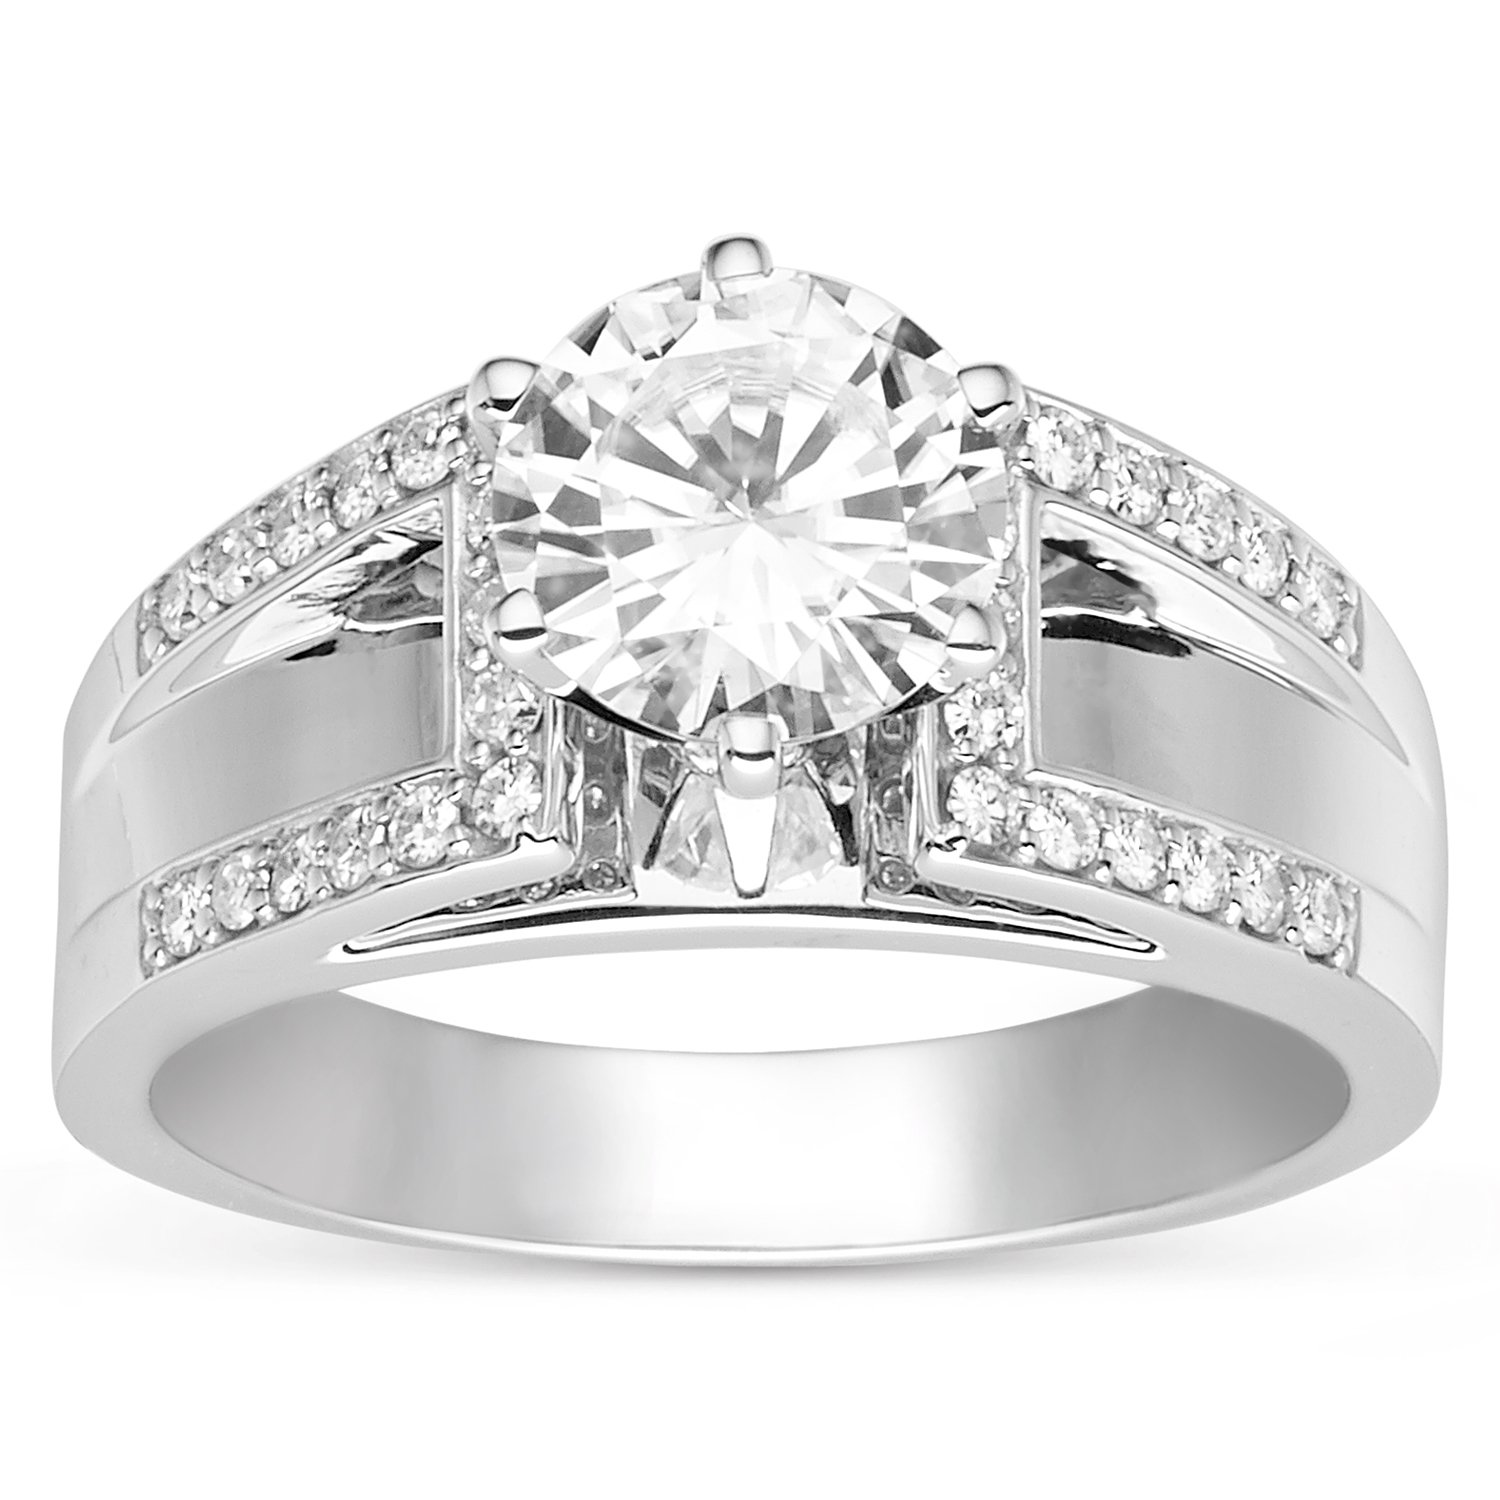 Round Brilliant Cut 8.0mm Moissanite Bridge Ring- size 7, 2.20cttw DEW by Charles & Colvard